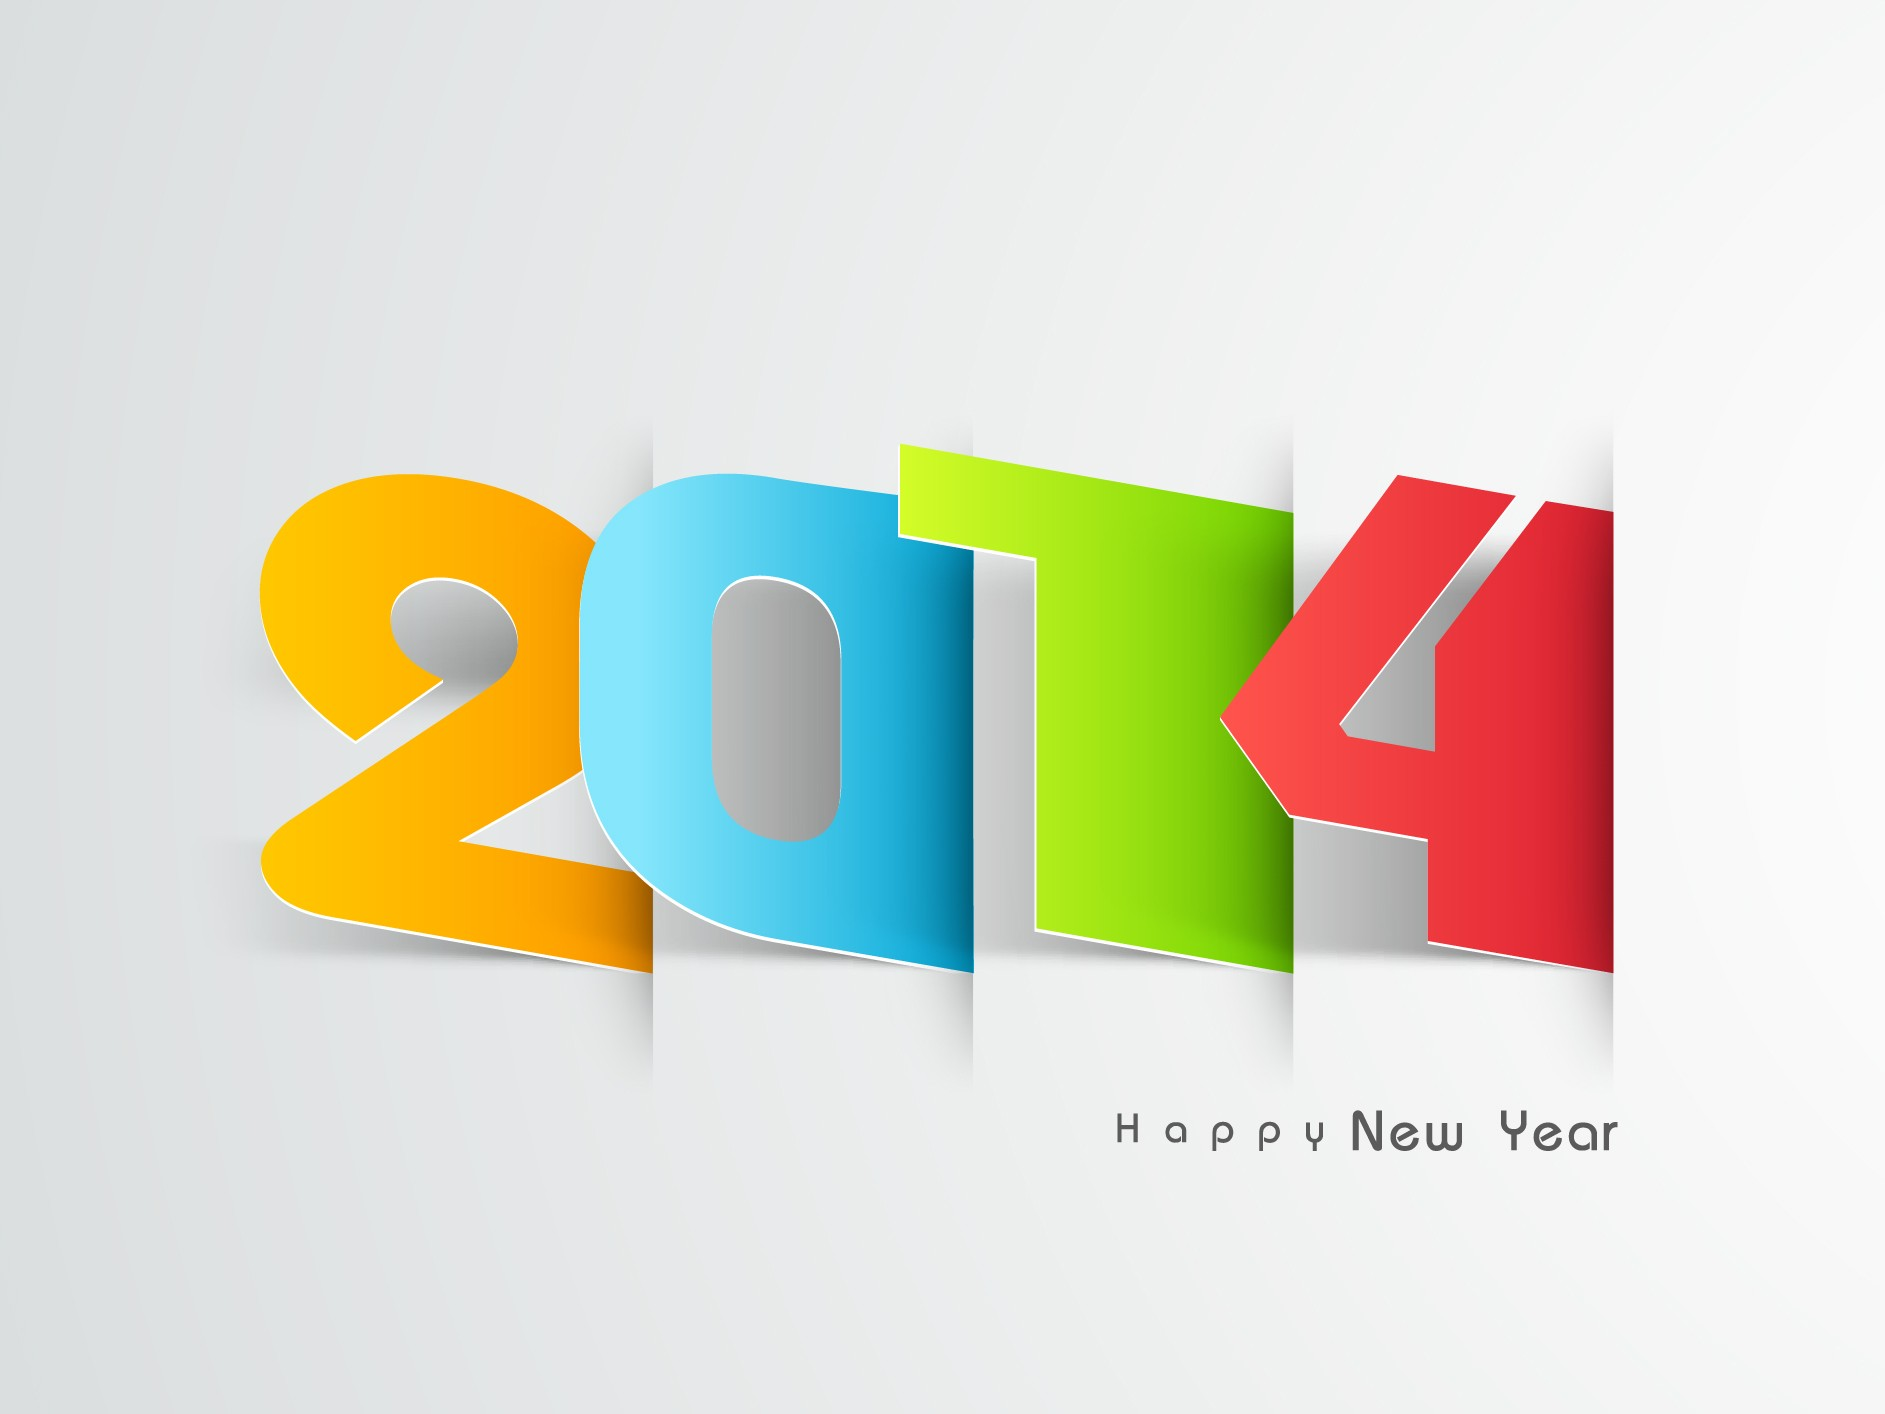 happy_new_year_2014_hd_wallpapers_10